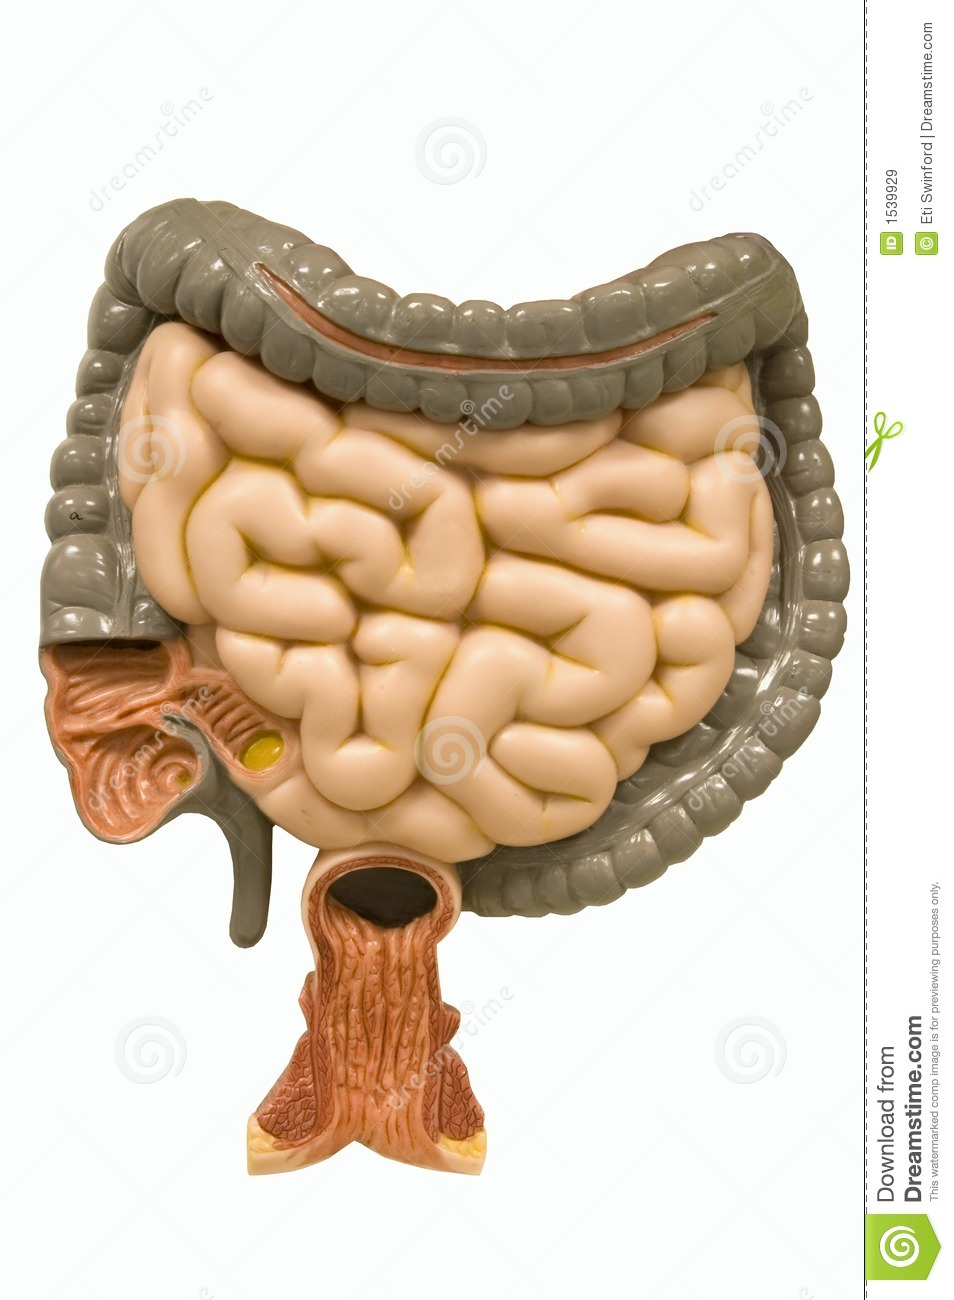 ... track showing large and small intestine. Image has a clipping path